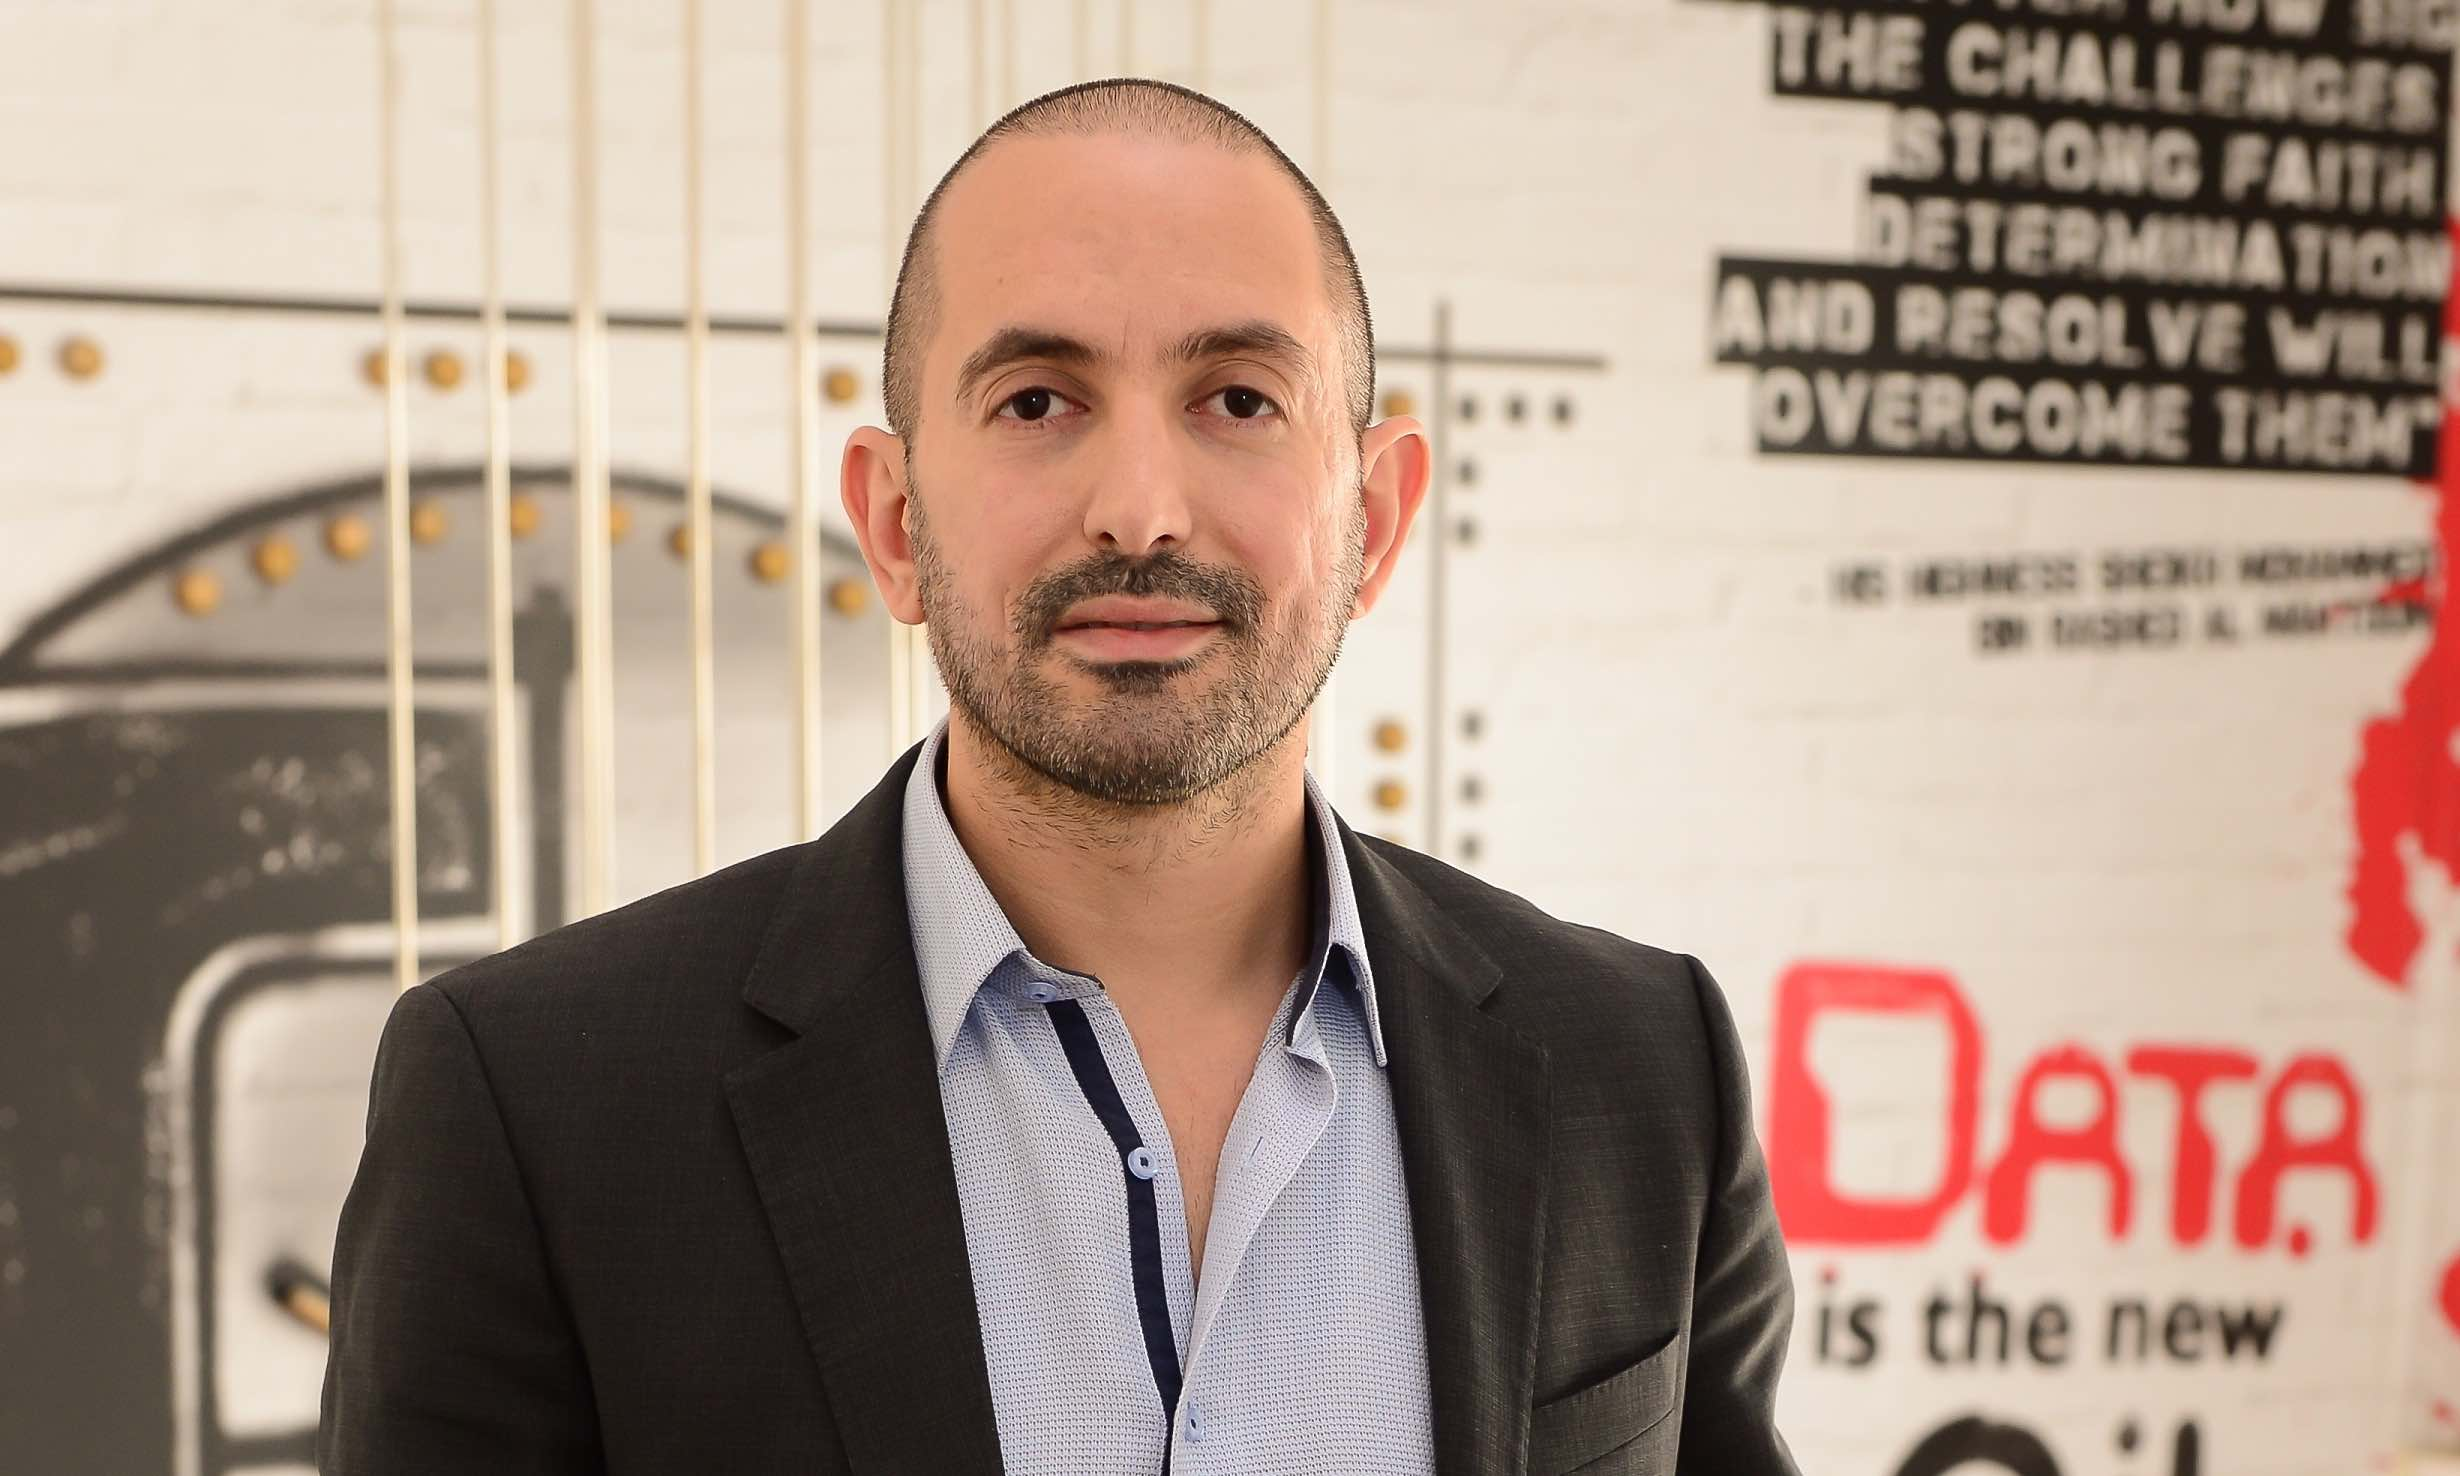 Abed Shaheen CEO InfoFort